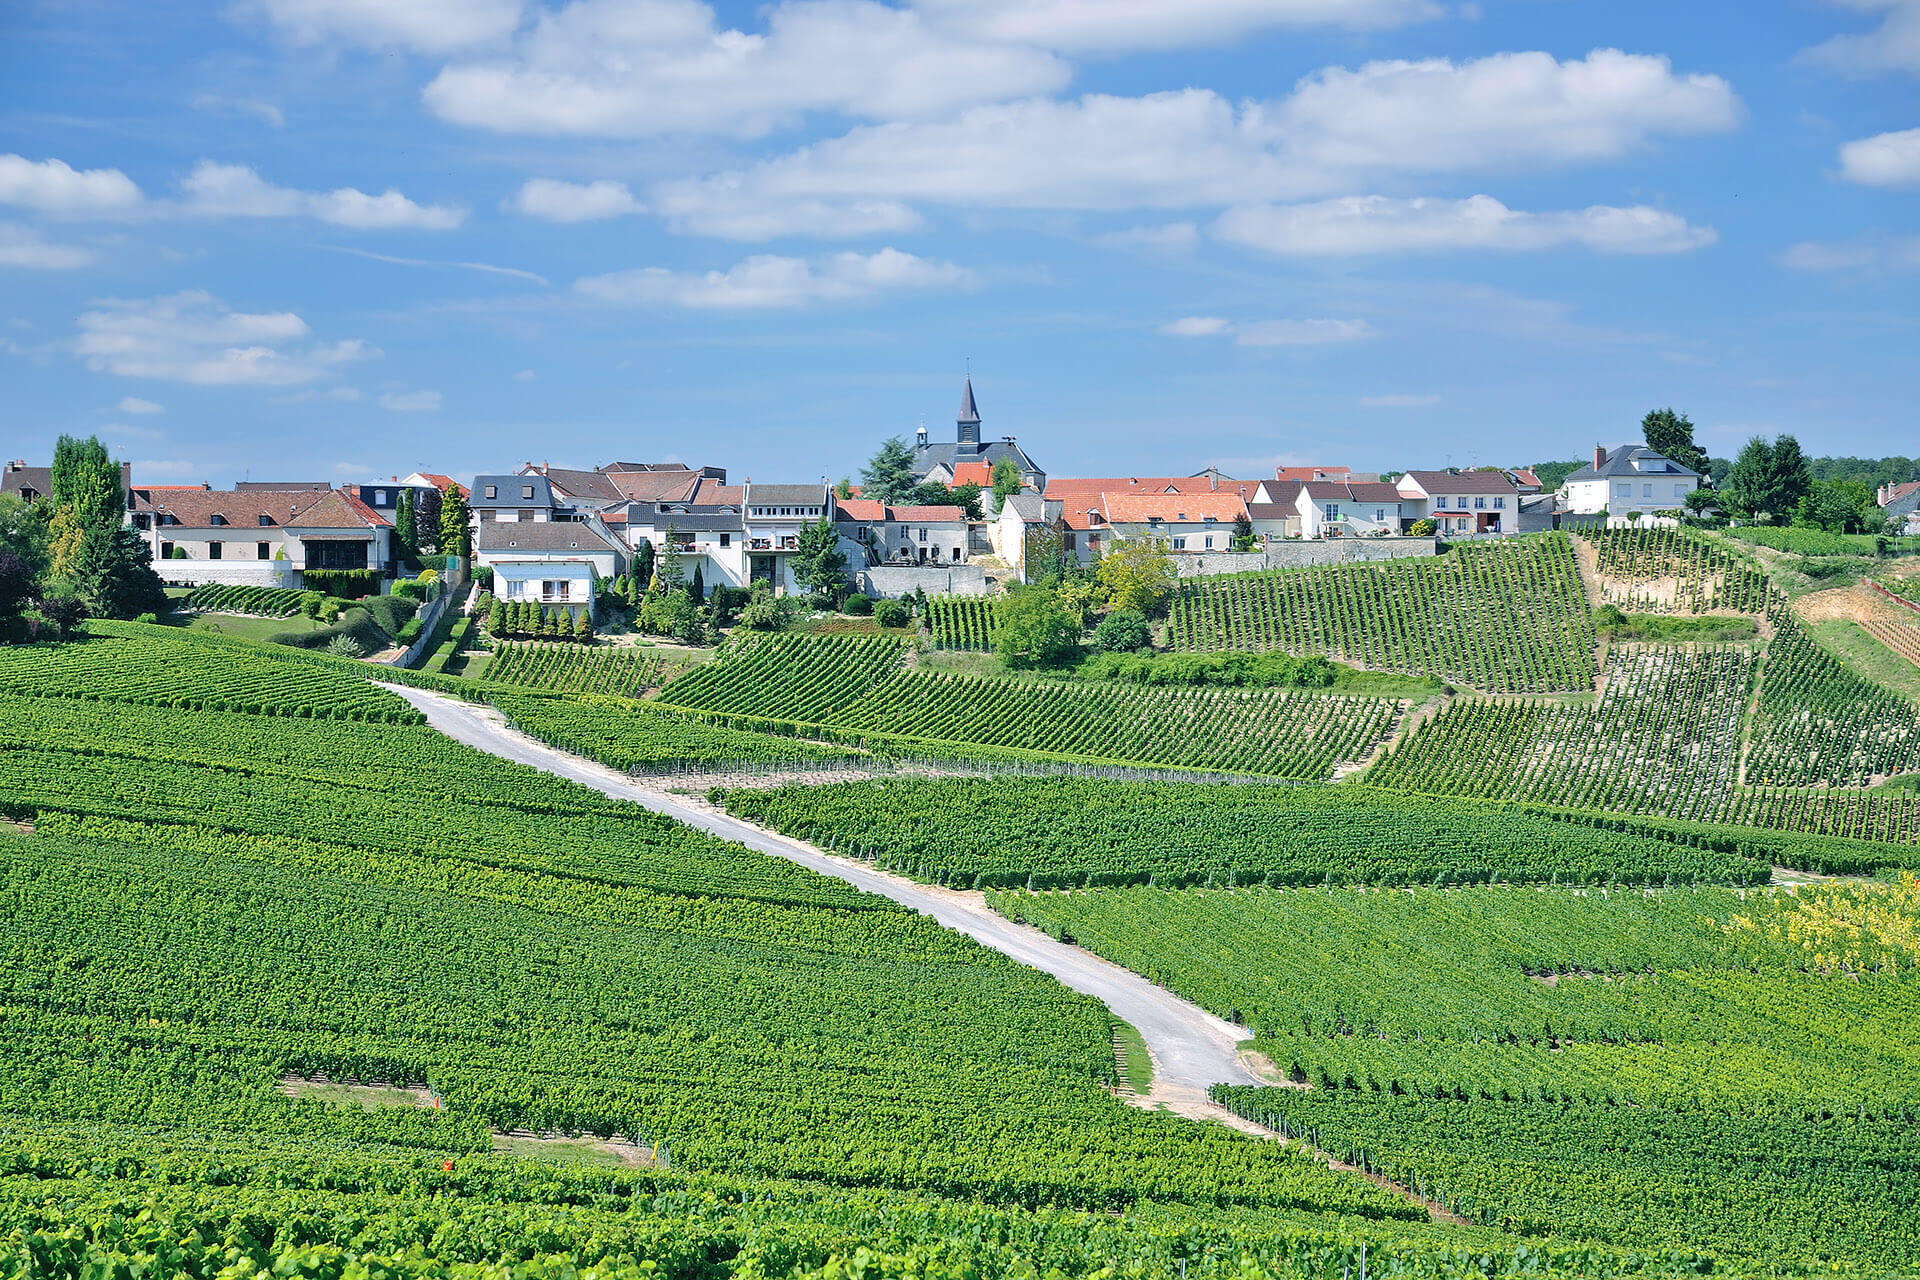 A view of a vineyard with a town in the background